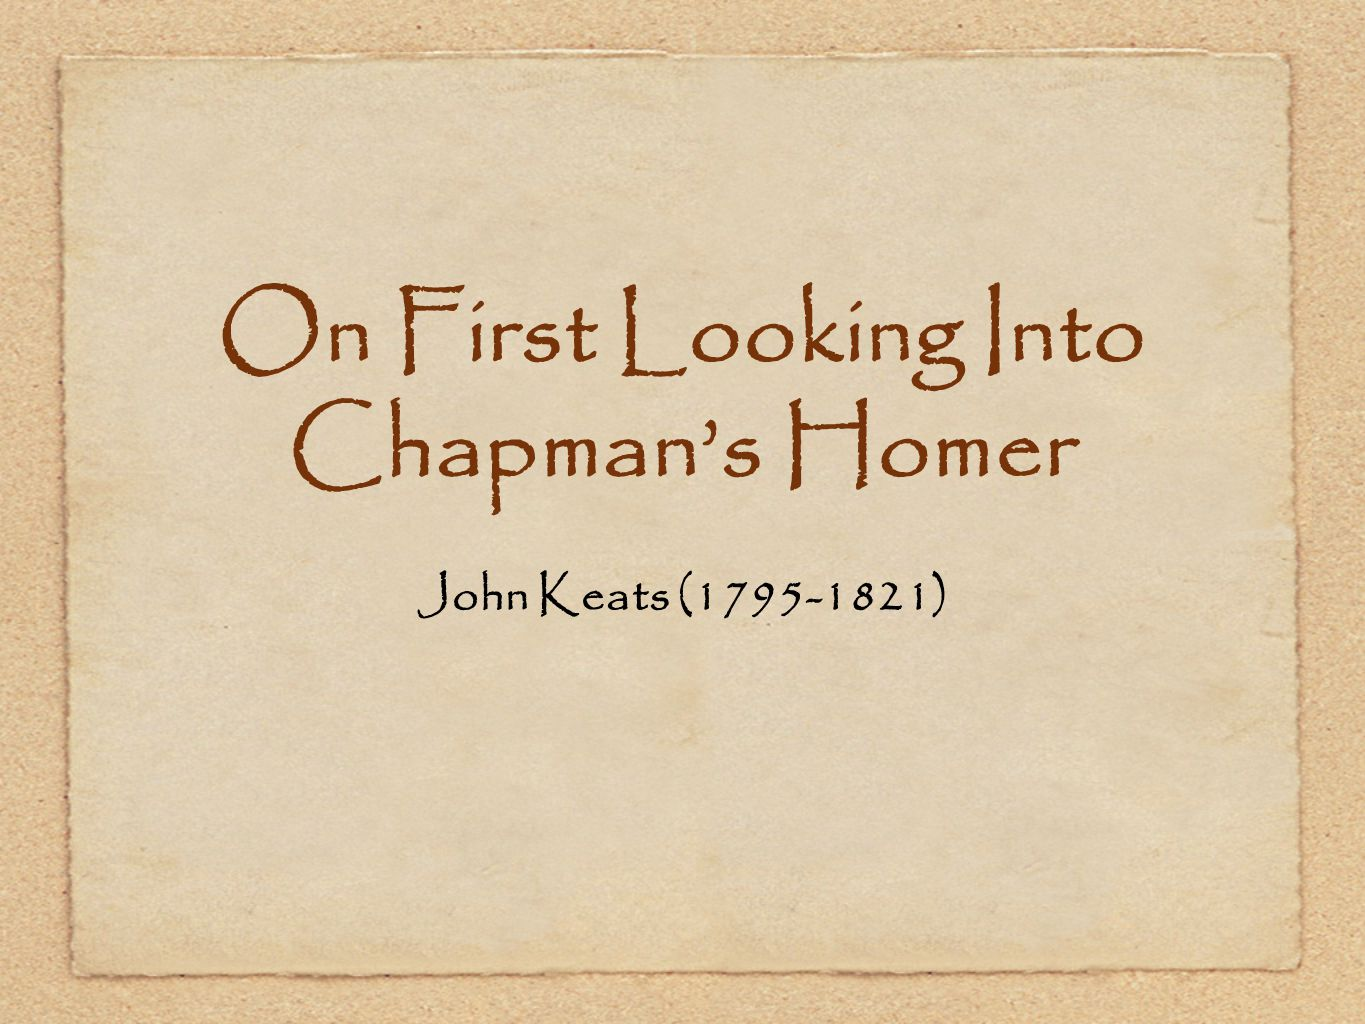 to homer by john keats John keats, 1795–1821  keen, fitful gusts are whisp'ring here and there to  one who has been long in city pent on first looking into chapman's homer.